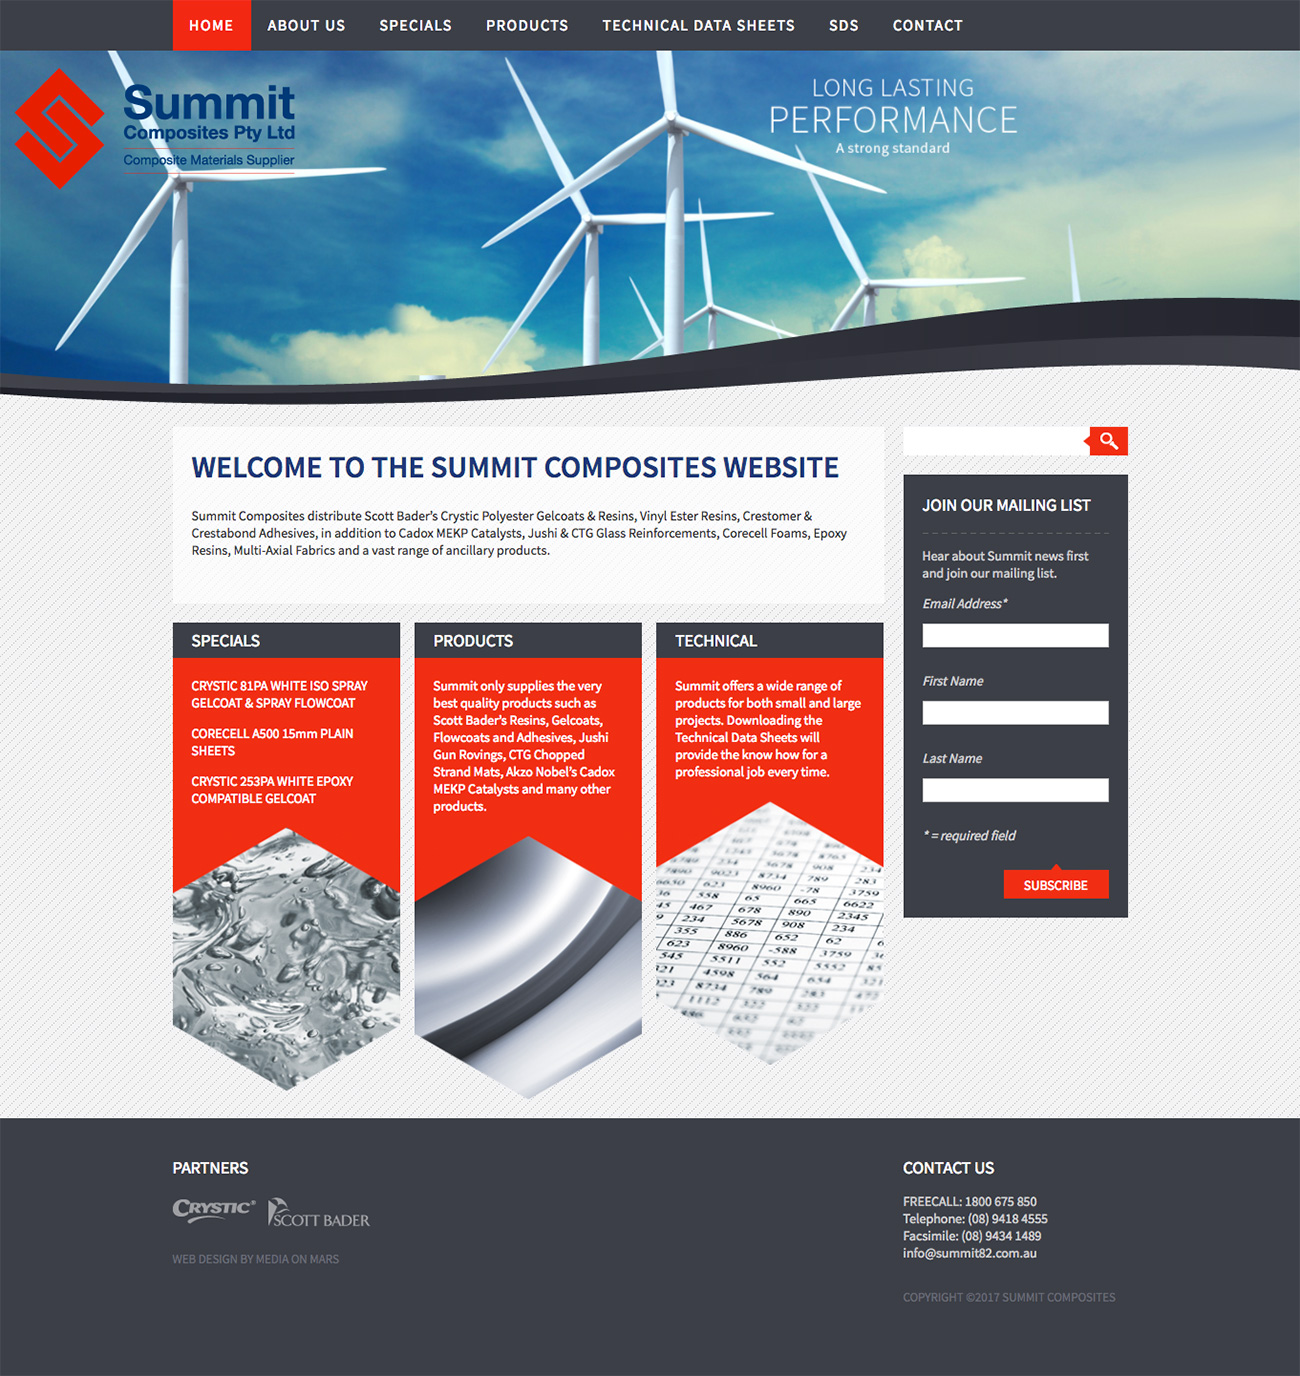 Screen grab of Summit Composites website homepage